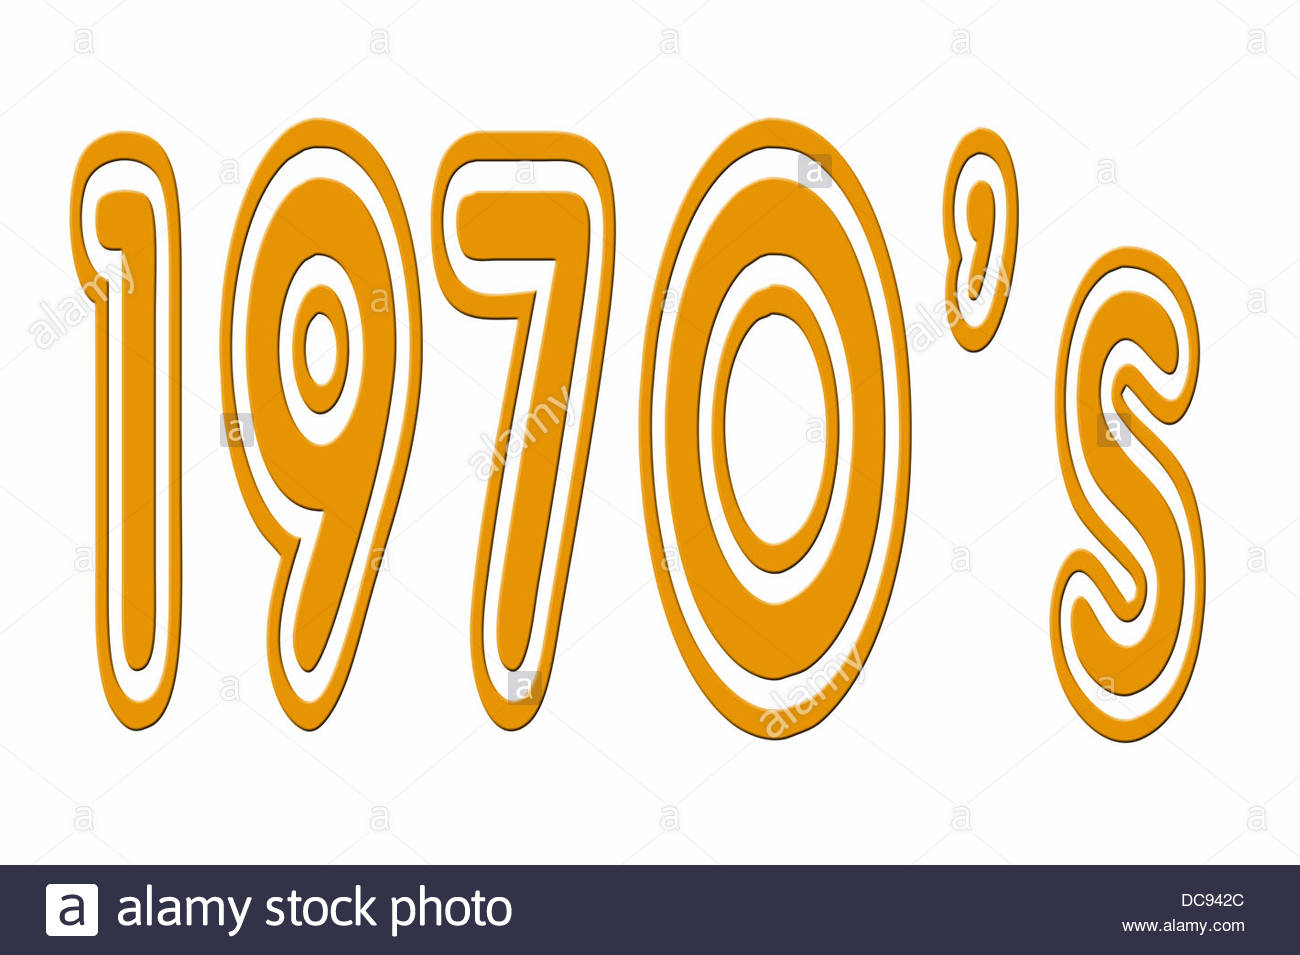 Digital composition 1970's in a seventies style font. - Stock Image